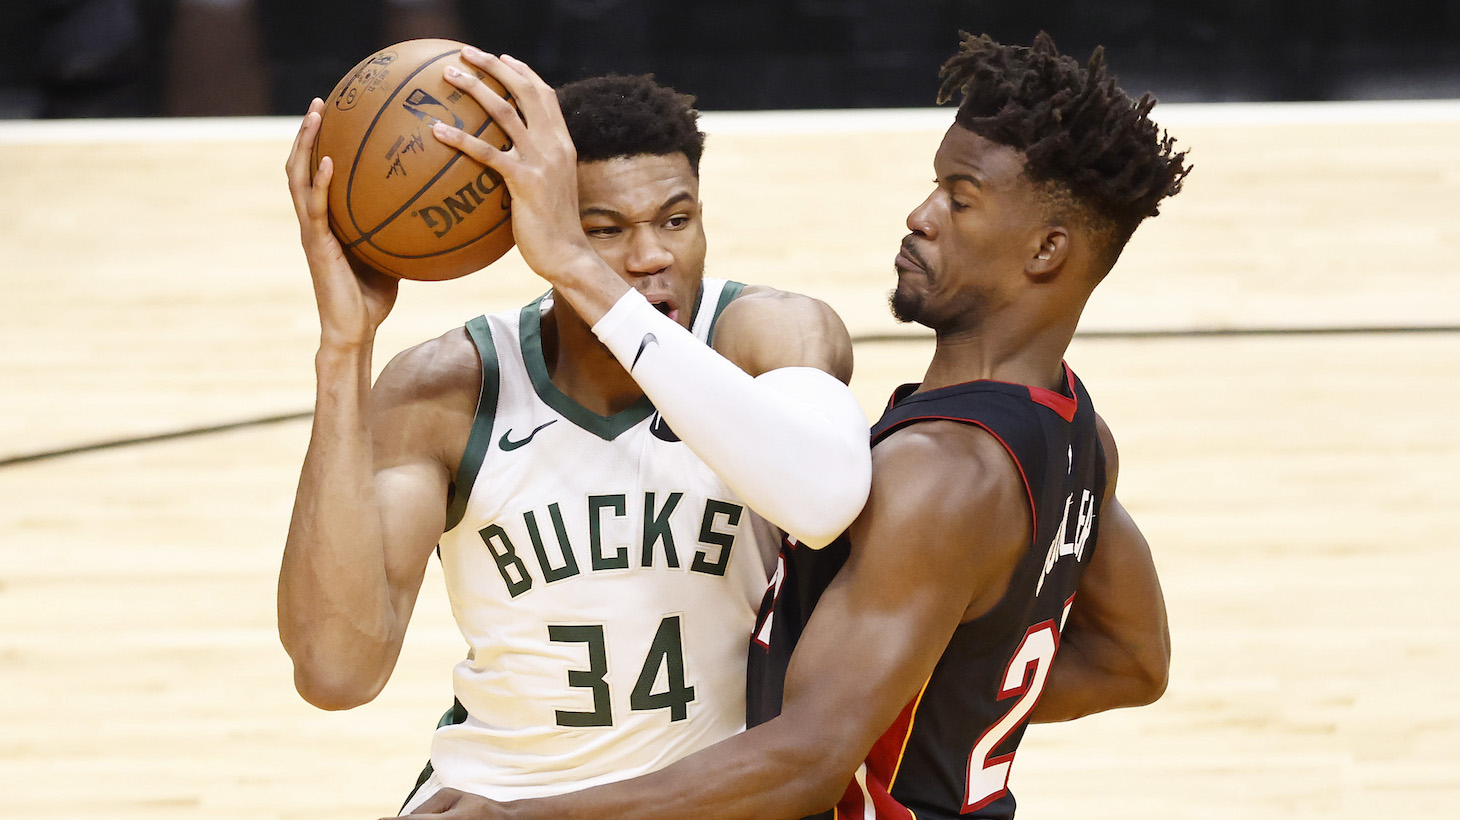 MIAMI, FLORIDA - MAY 27: Giannis Antetokounmpo #34 of the Milwaukee Bucks drives to the basket against Jimmy Butler #22 of the Miami Heat during the third quarter in Game Three of the Eastern Conference first-round playoff series at American Airlines Arena on May 27, 2021 in Miami, Florida. NOTE TO USER: User expressly acknowledges and agrees that, by downloading and or using this photograph, User is consenting to the terms and conditions of the Getty Images License Agreement. (Photo by Michael Reaves/Getty Images)